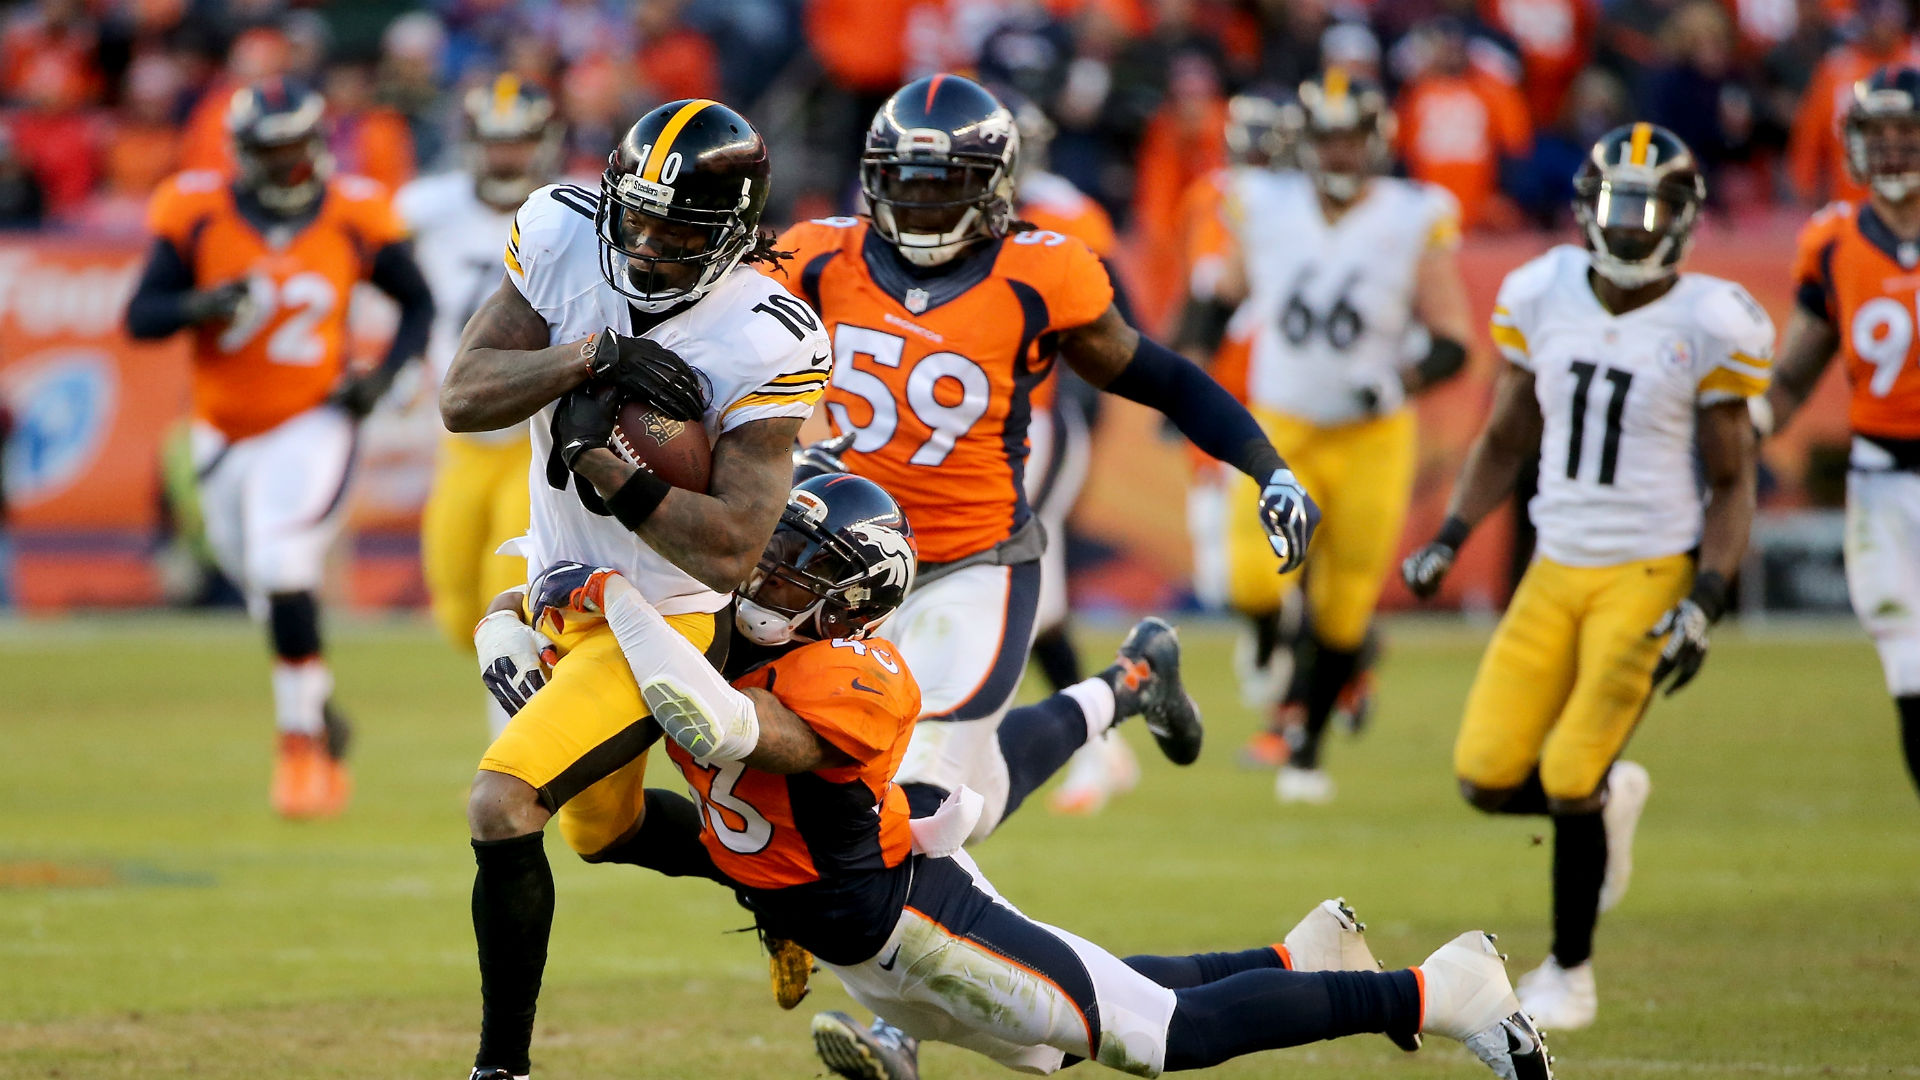 Suspended Steelers WR Bryant meets National Football League officials